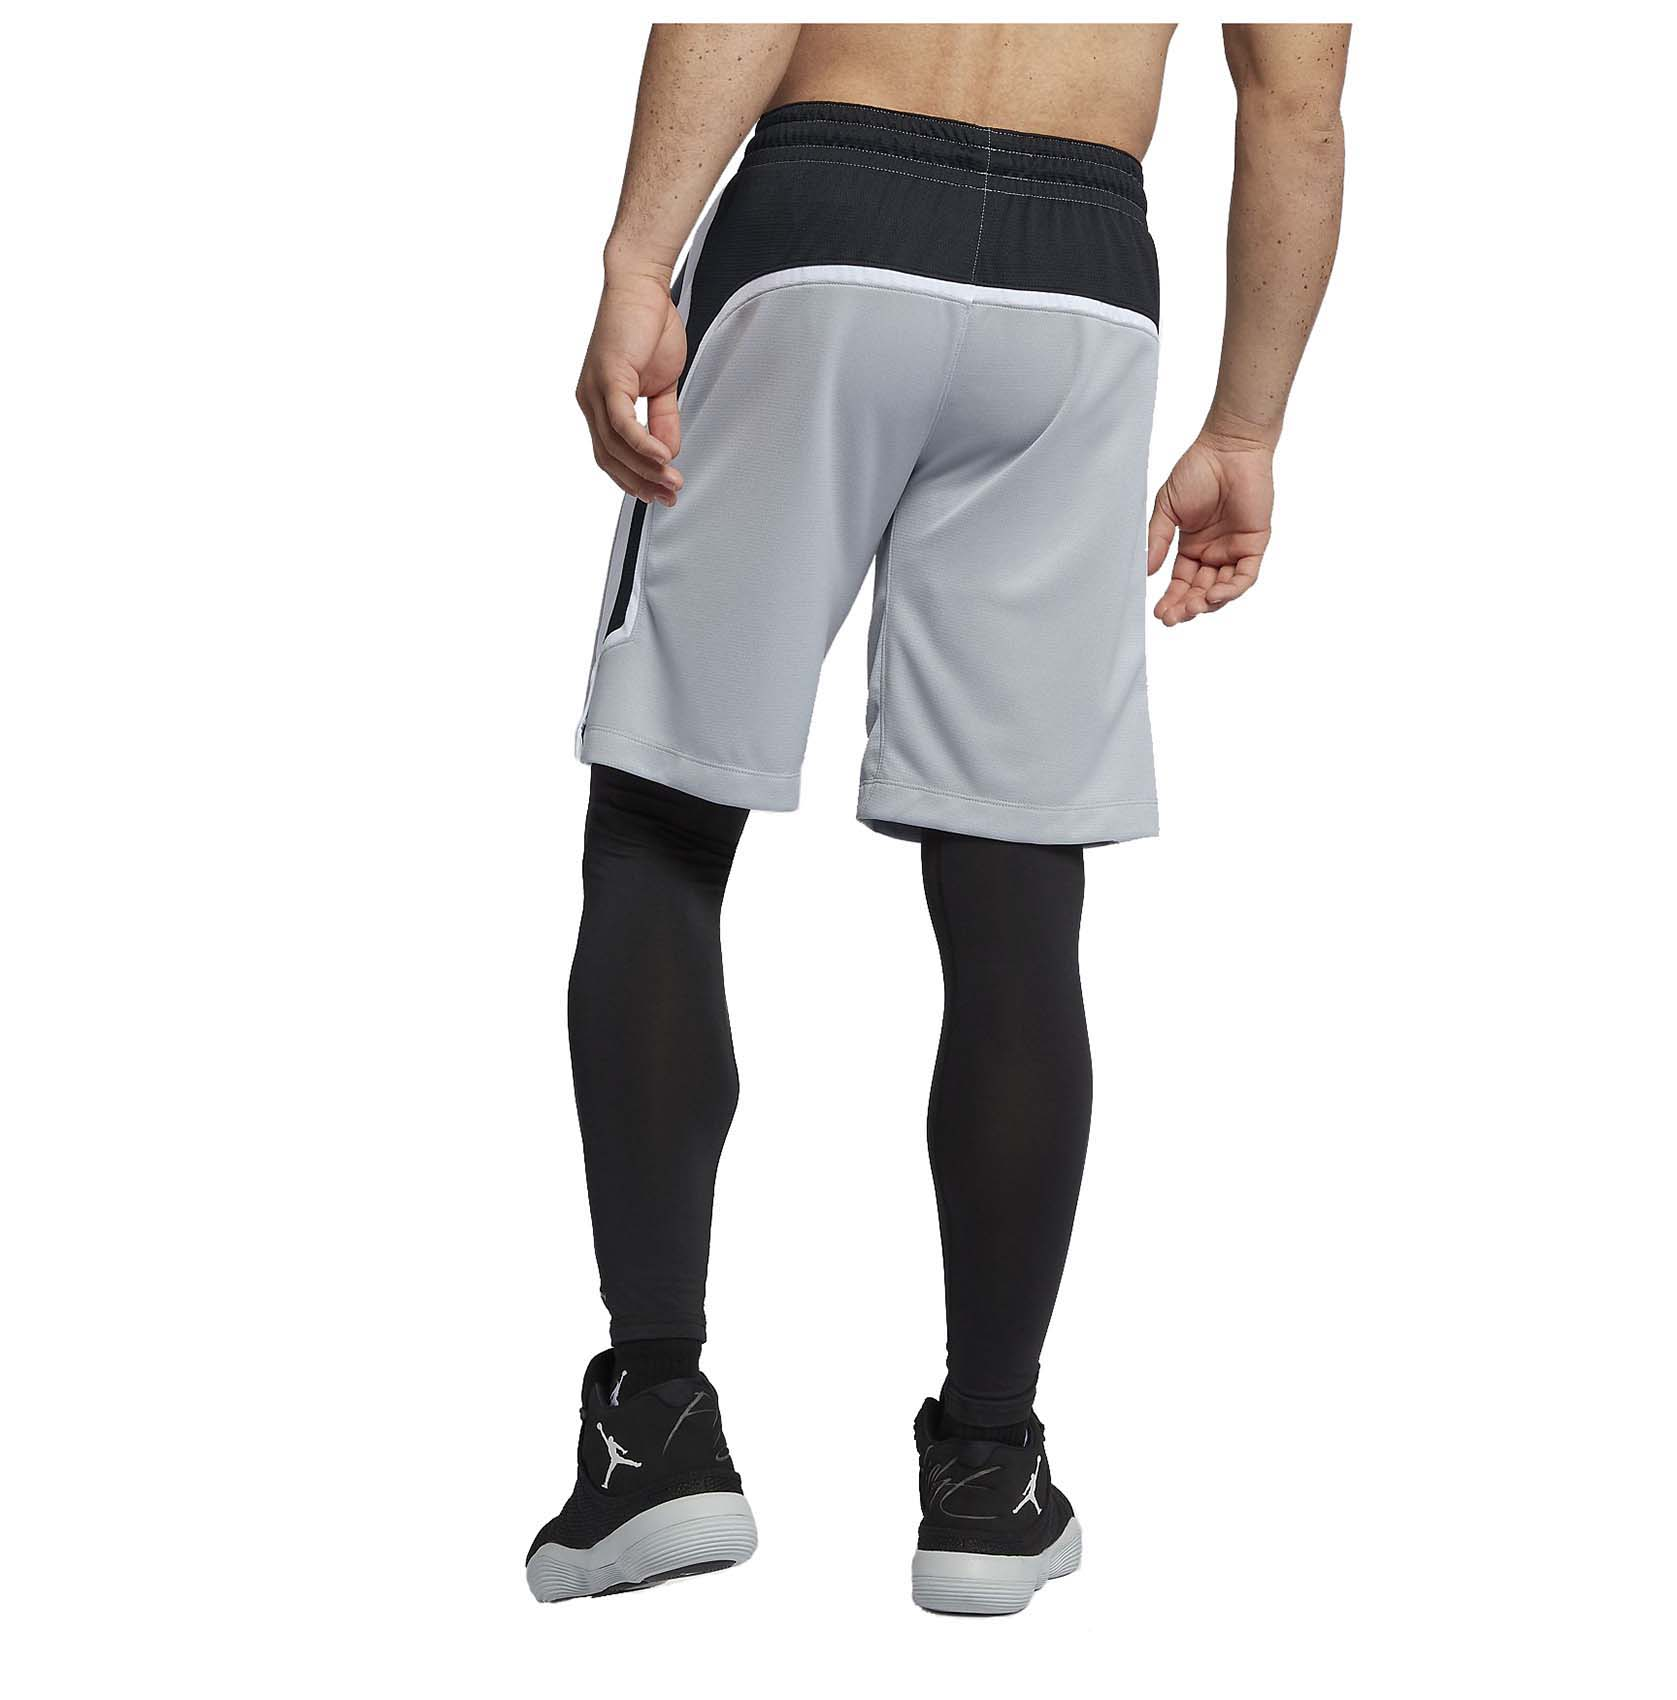 ed3d28fbfb5417 Jordan Men s Nike Flight Dri-Fit Basketball Shorts-Black White